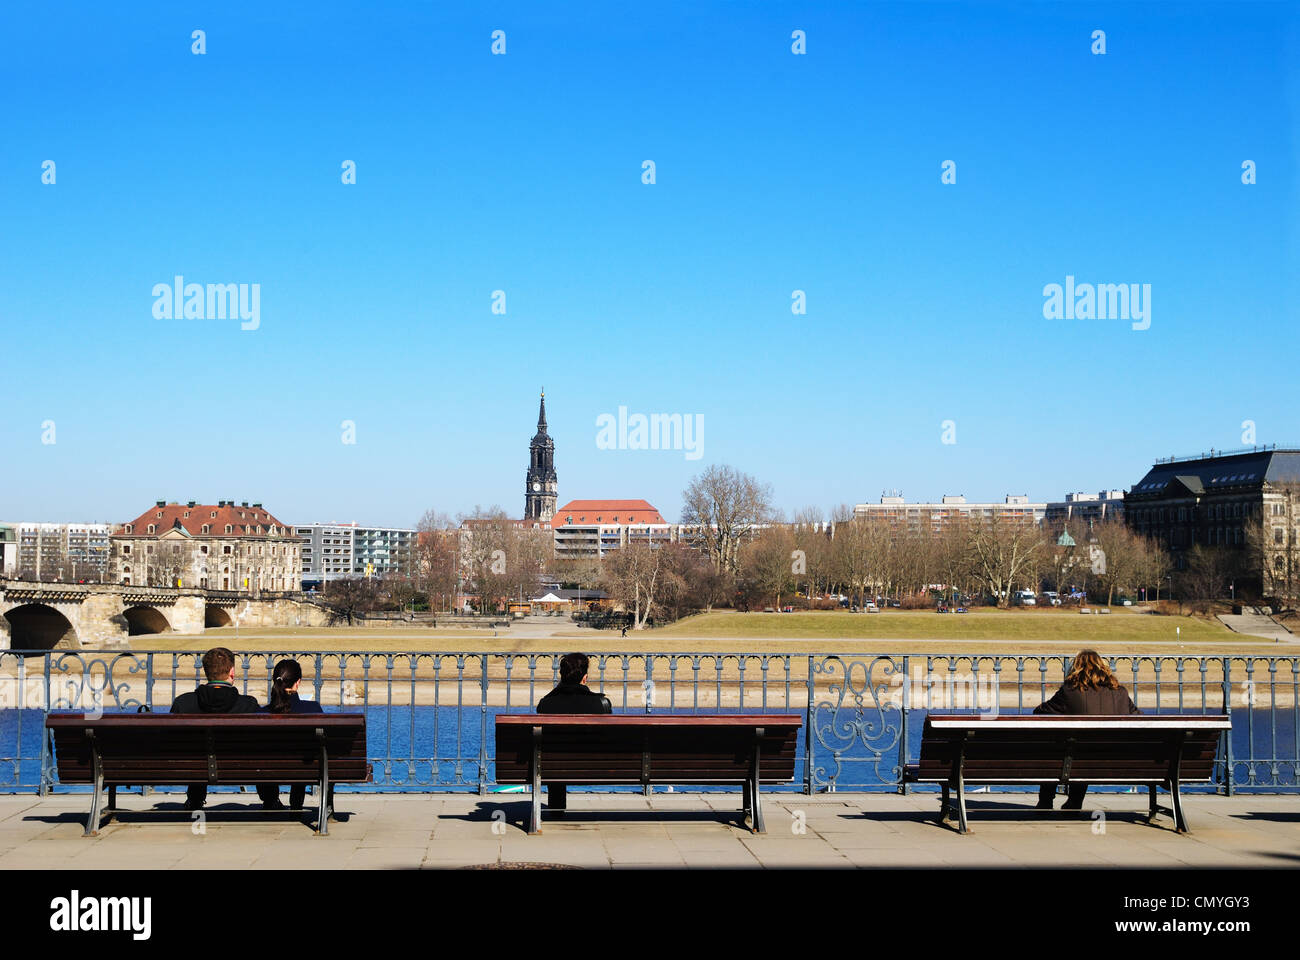 New Town from the Right Bank of the Elbe, Dresden, Germany - Mar 2011 - Stock Image